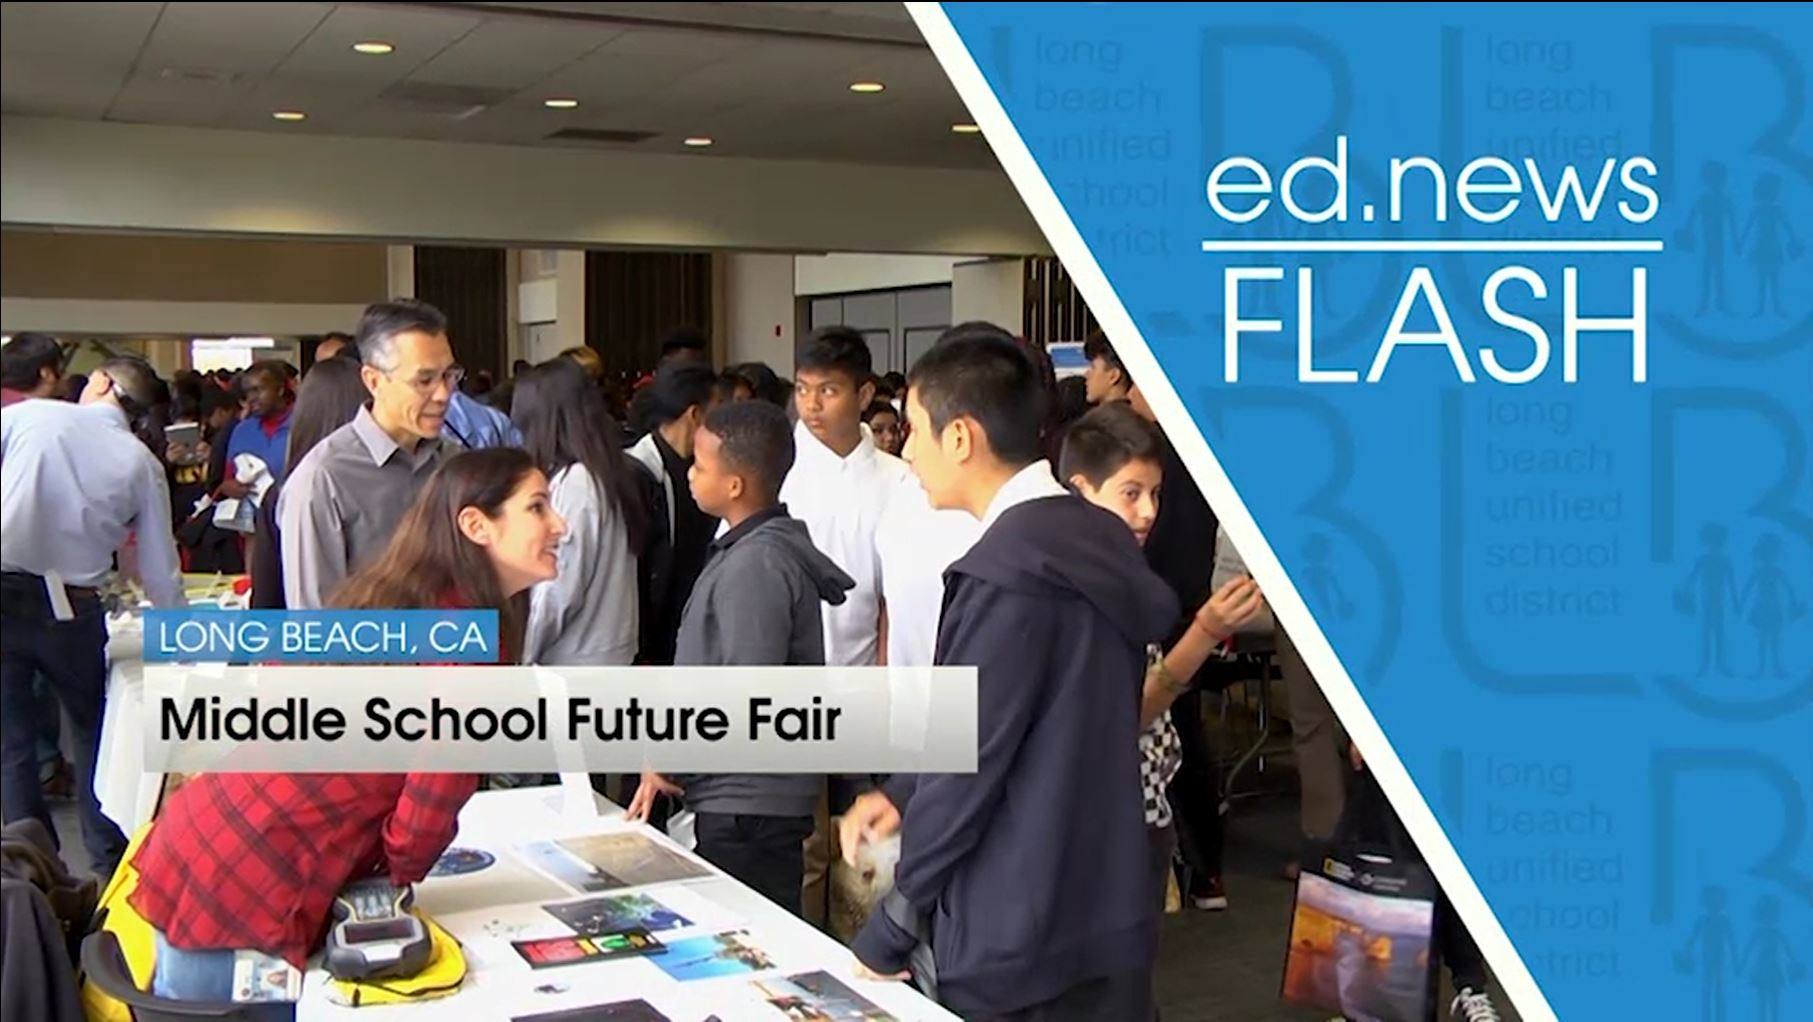 ed.news Flash - Middle School Future Fair [HD] - Video